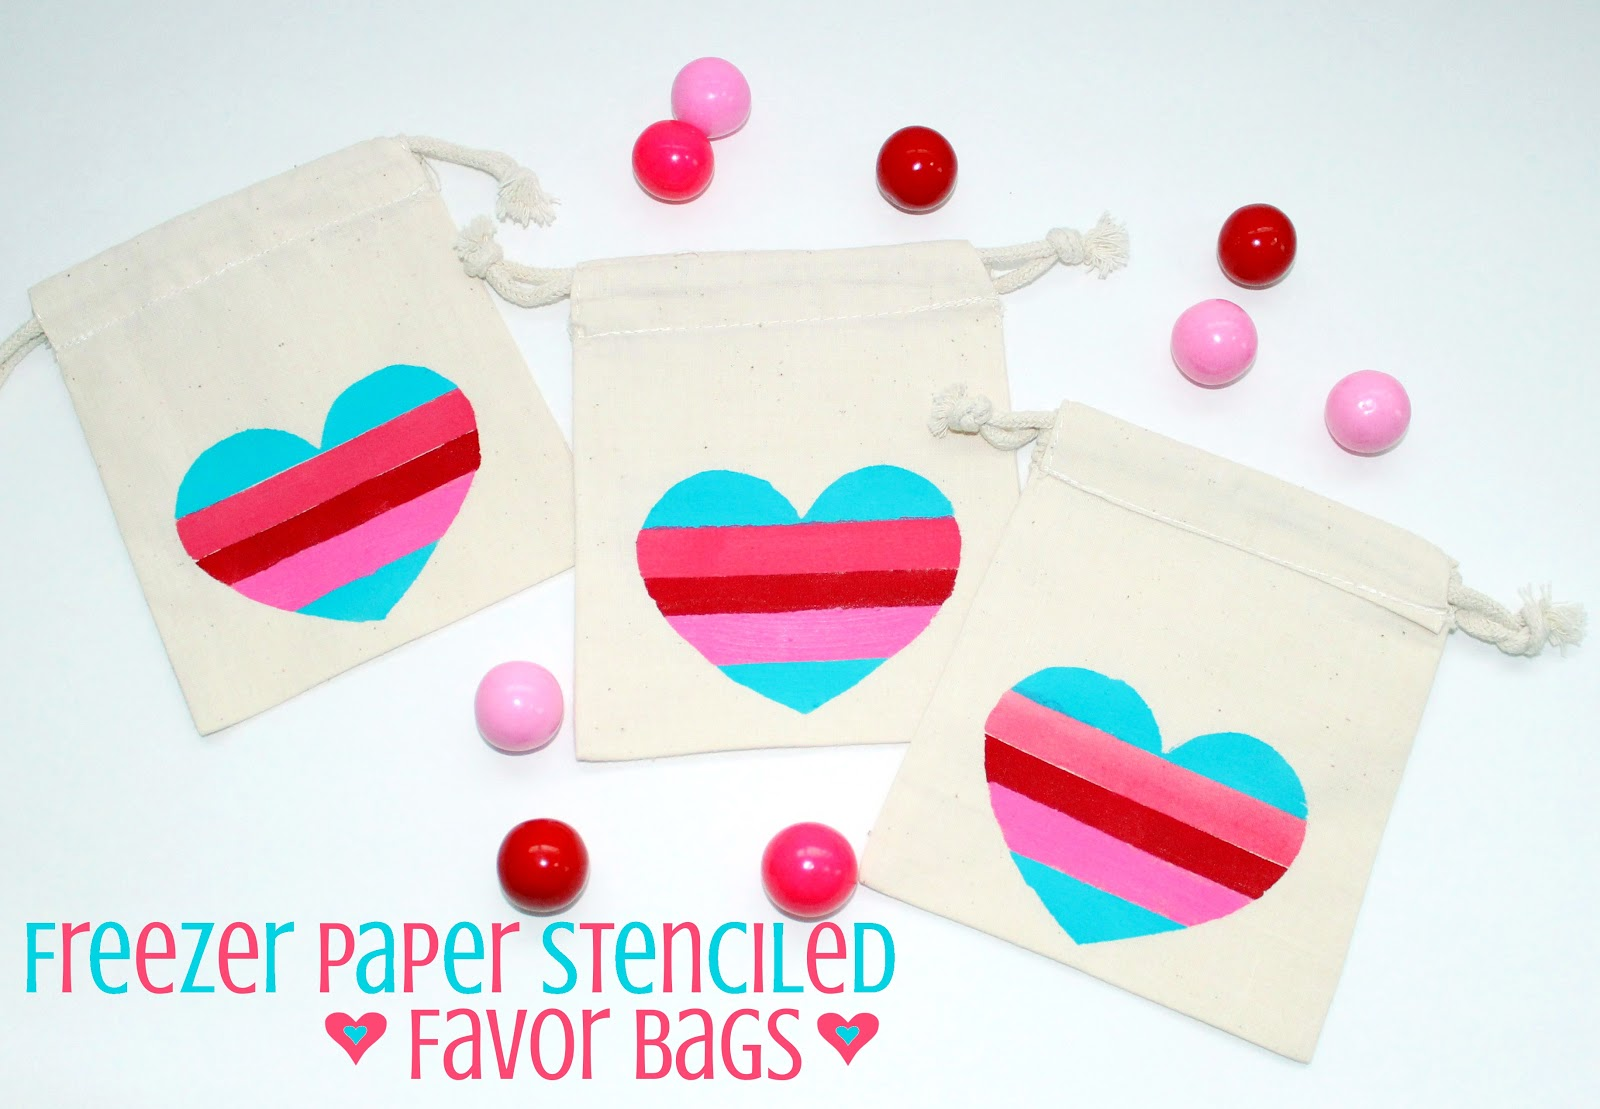 freezer-paper-stenciled-favor-bags